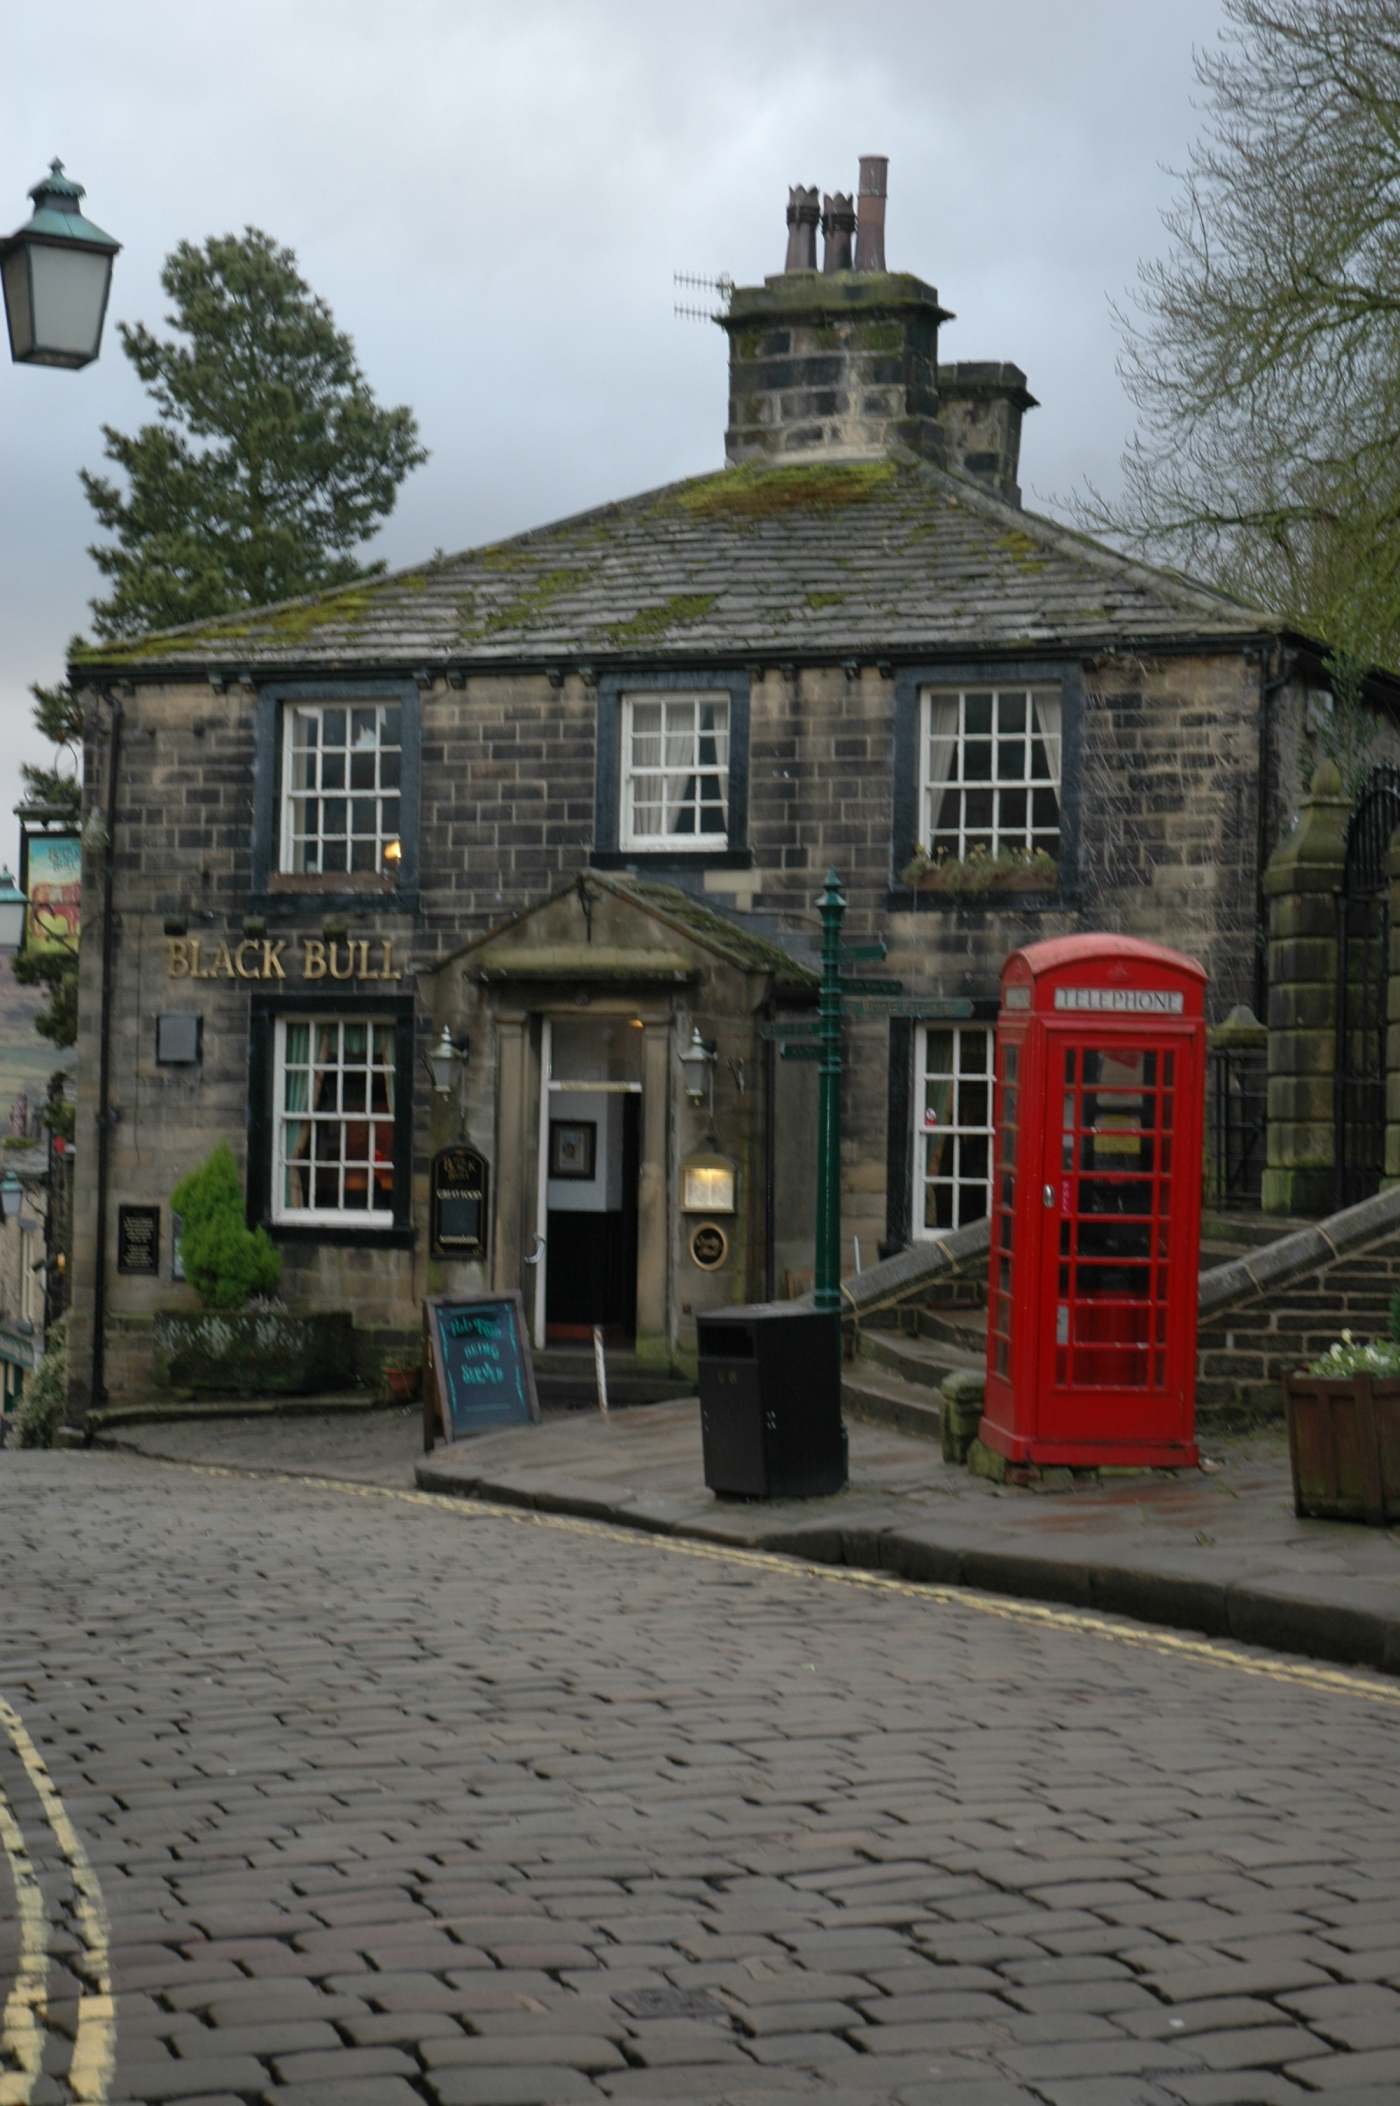 The Black bull public house Haworth